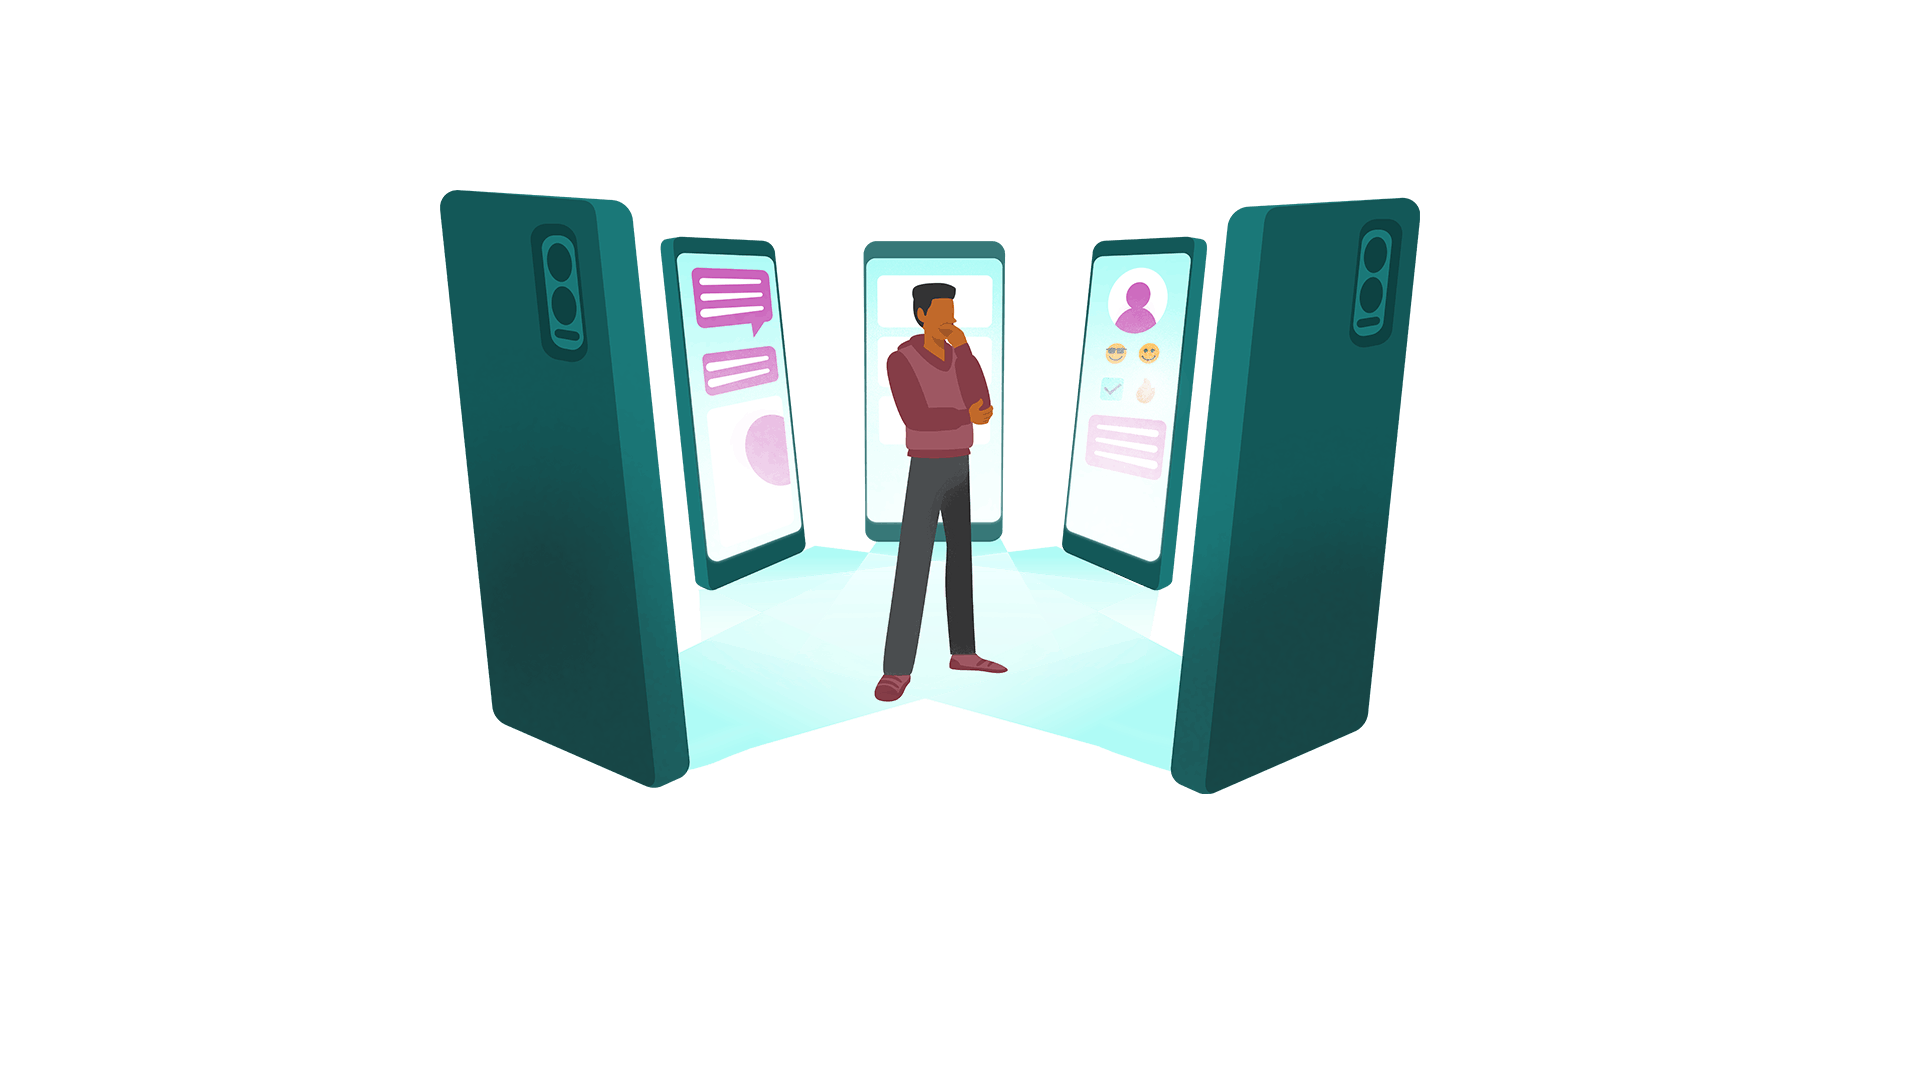 Illustration of man in the middle of multiple applications